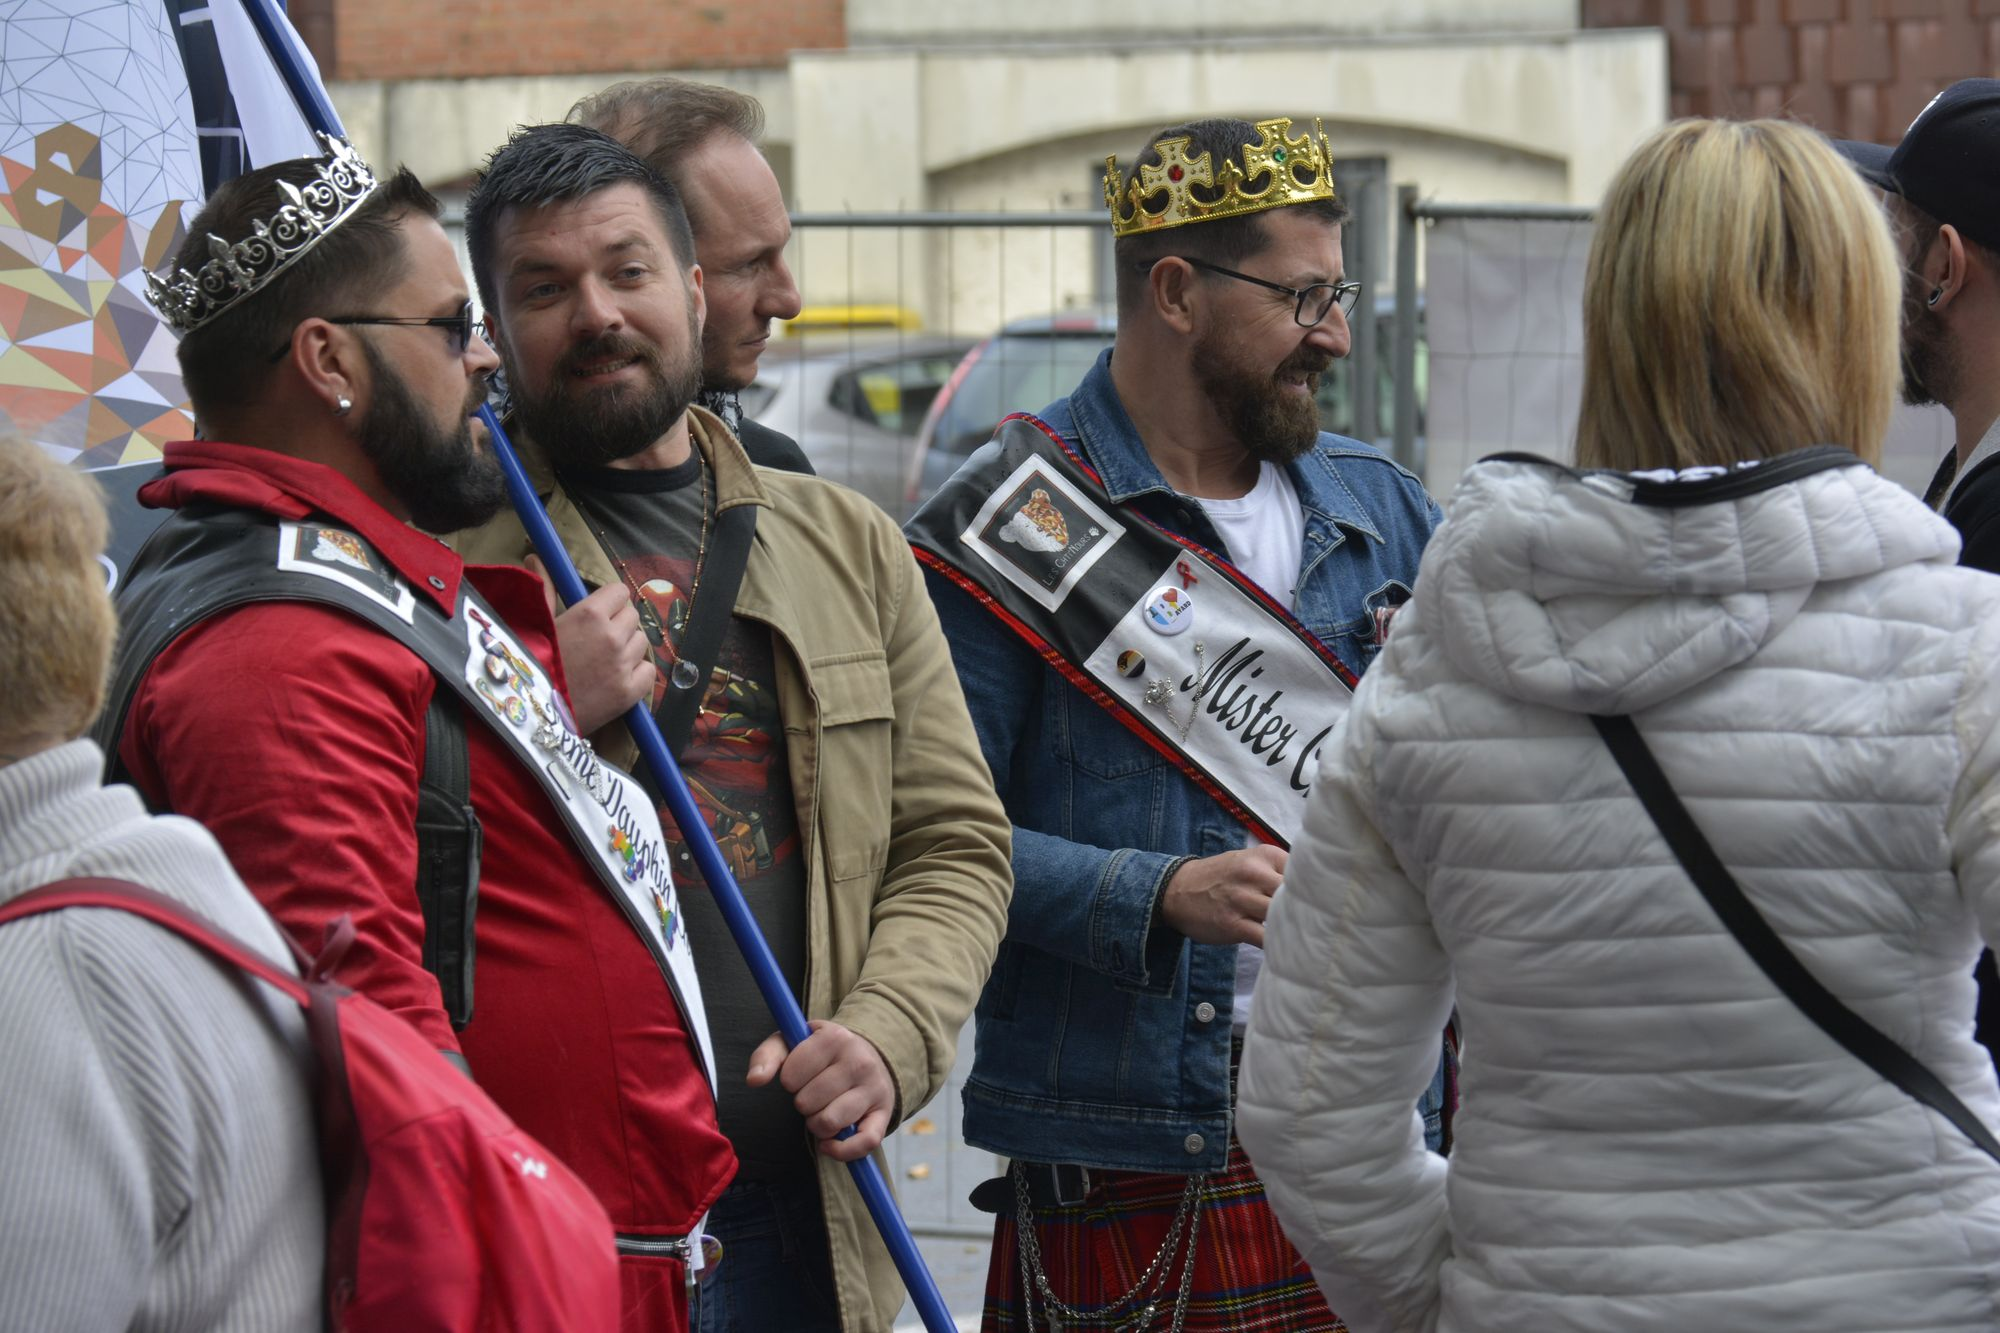 arras-pride-parade-2019_02